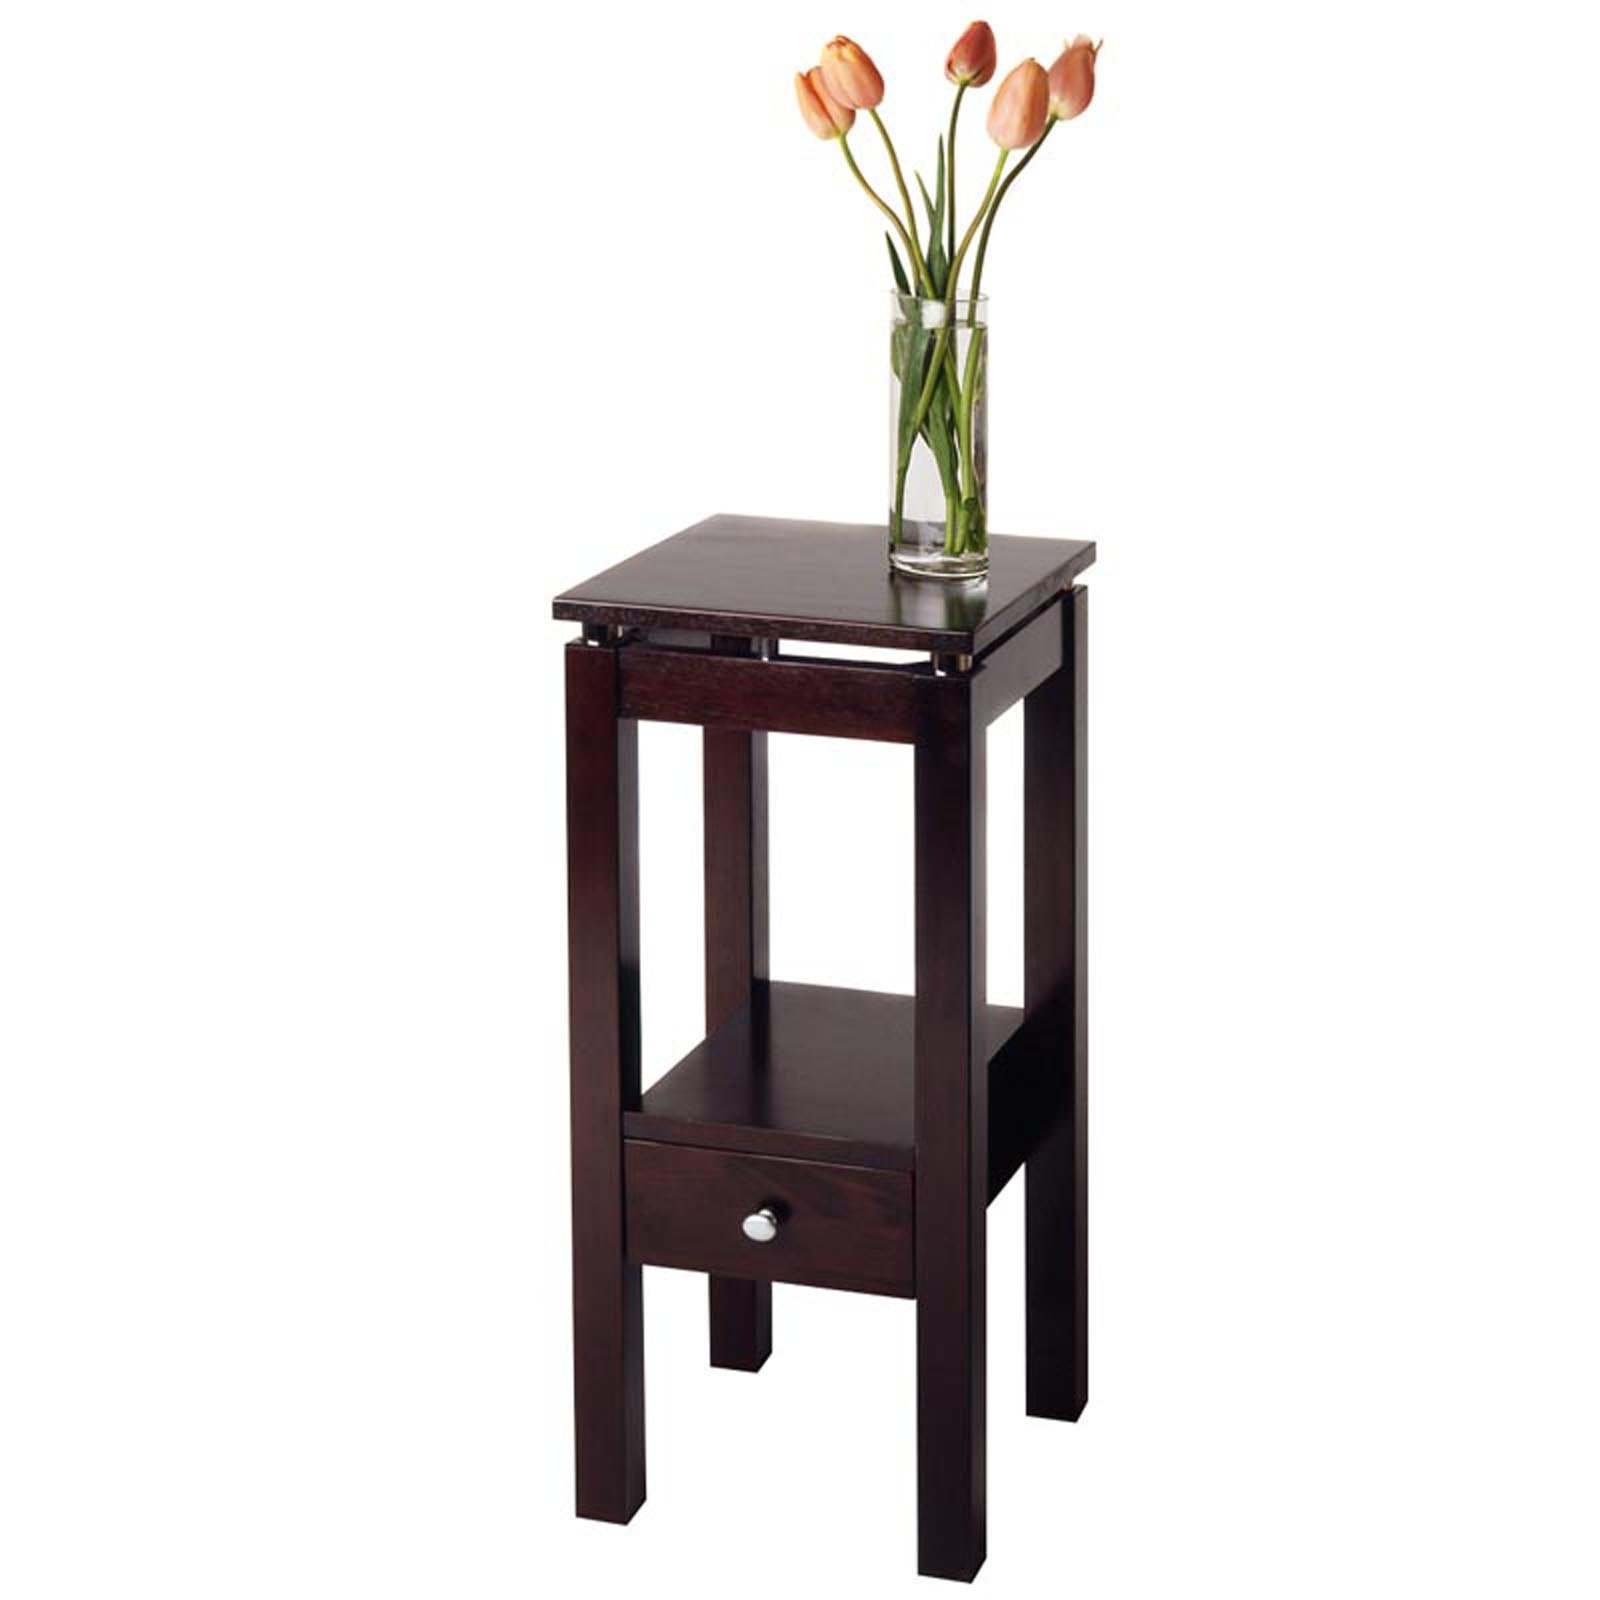 Living Room End Tables Furniture for Small Living Room ...